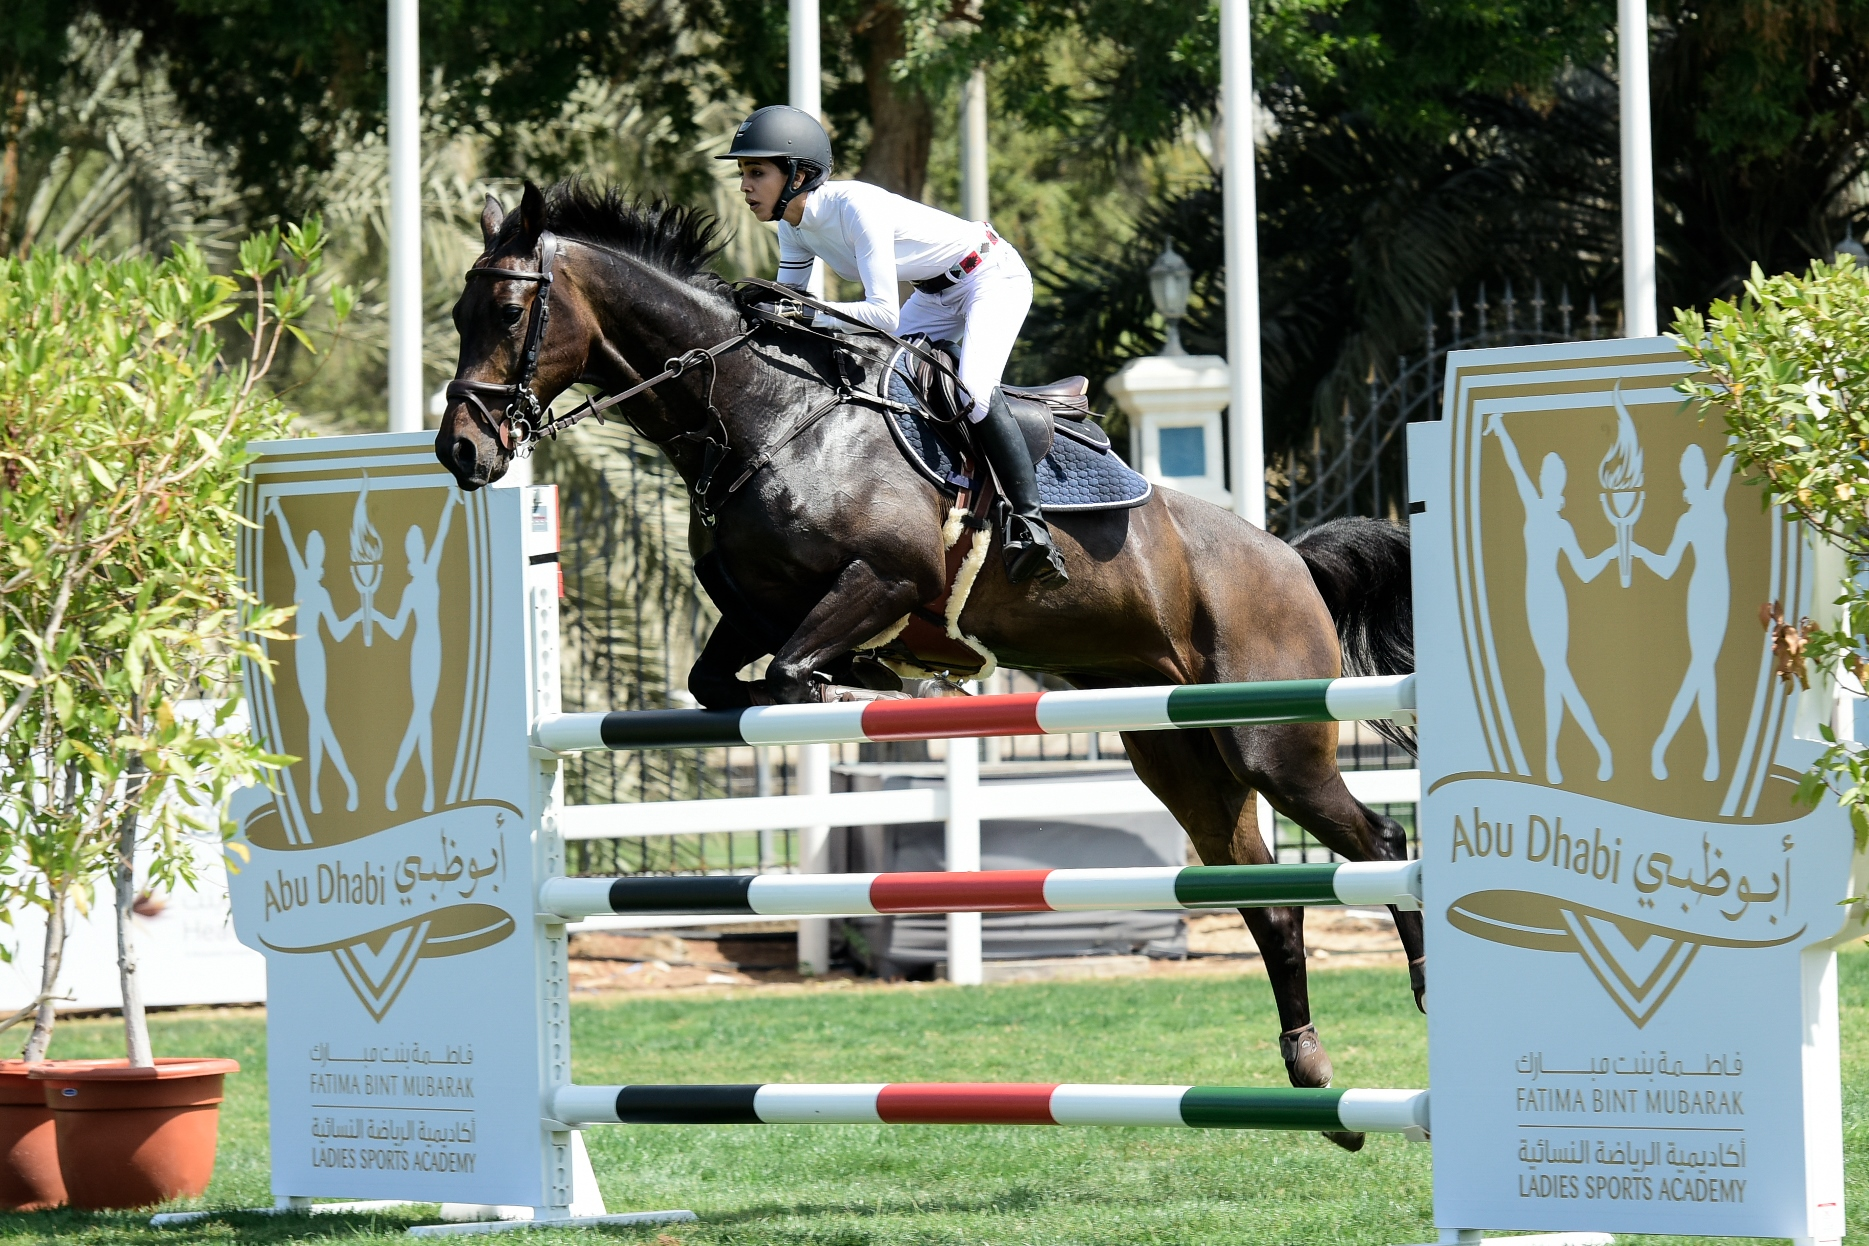 Horse Times Egypt: Equestrian Magazine :News :TROT DOWN TO THE BRAND NEW EQUESTRIAN VILLAGE AT FBMA'S INTERNATIONAL SHOW JUMPING CUP 2017 FOR A FUN FAMILY WEEKEND